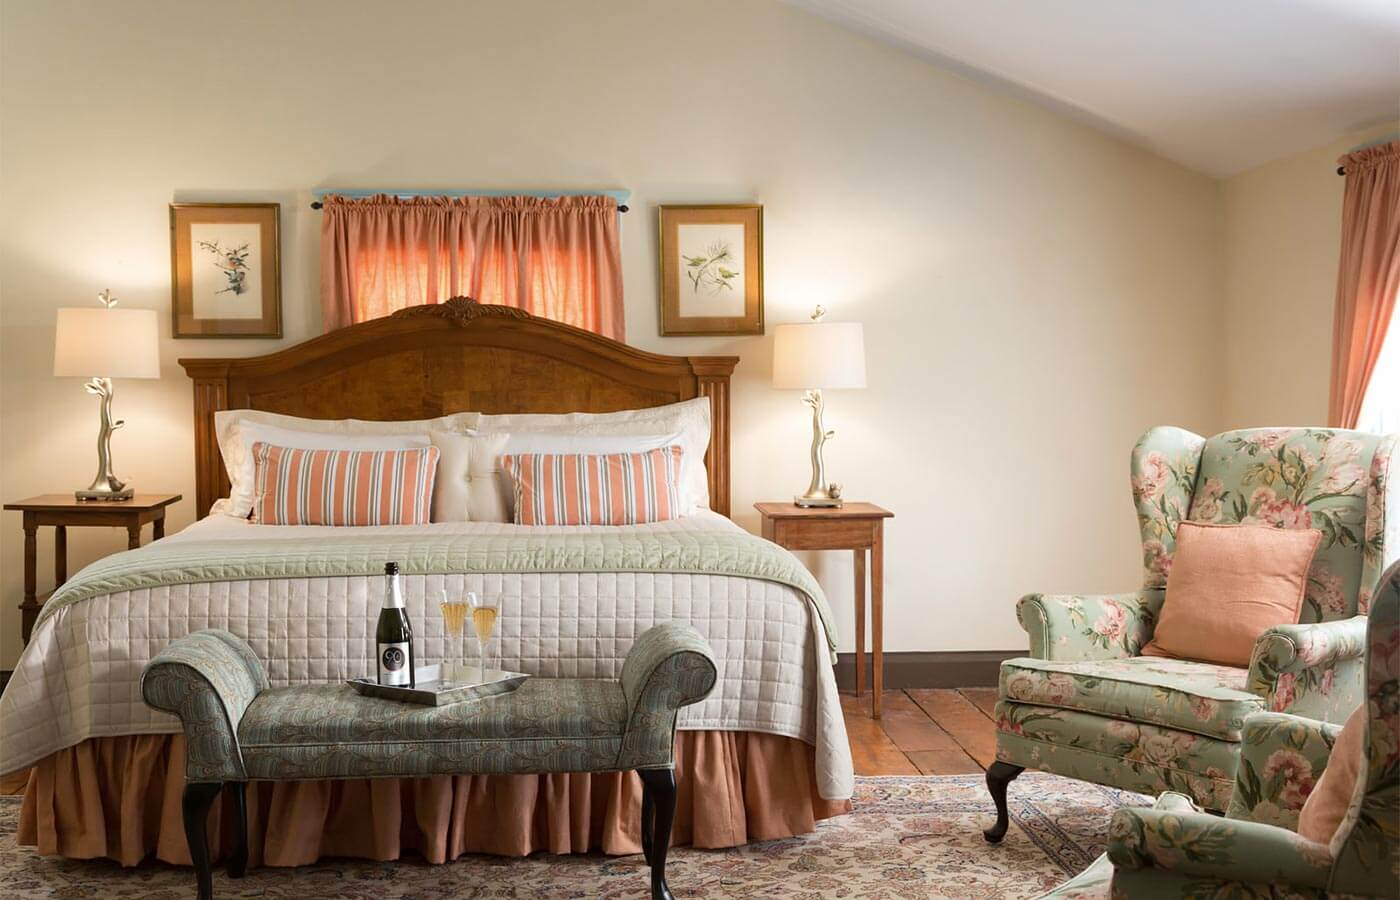 Romantic North Carolina Inn a Large room, King bed with foot bench, wine tray and highback wing chairs - Large suite perfect for honeymoons